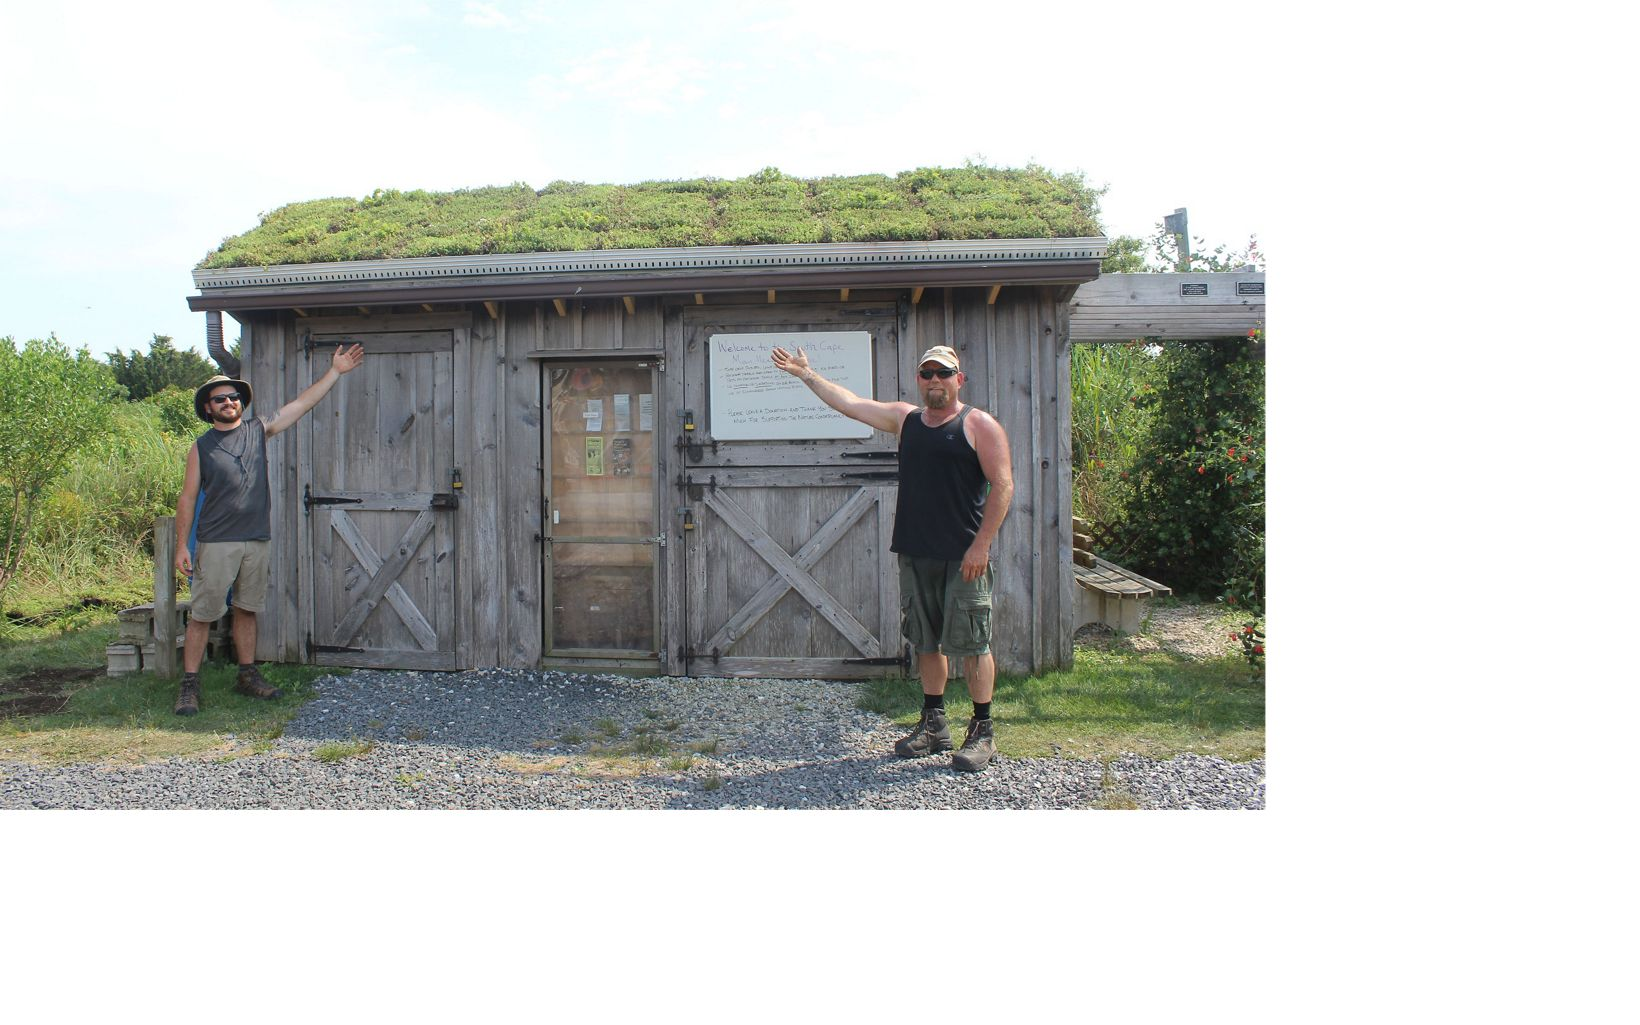 The green roof at the visitor Kiosk at the South Cape May Meadows Preserve